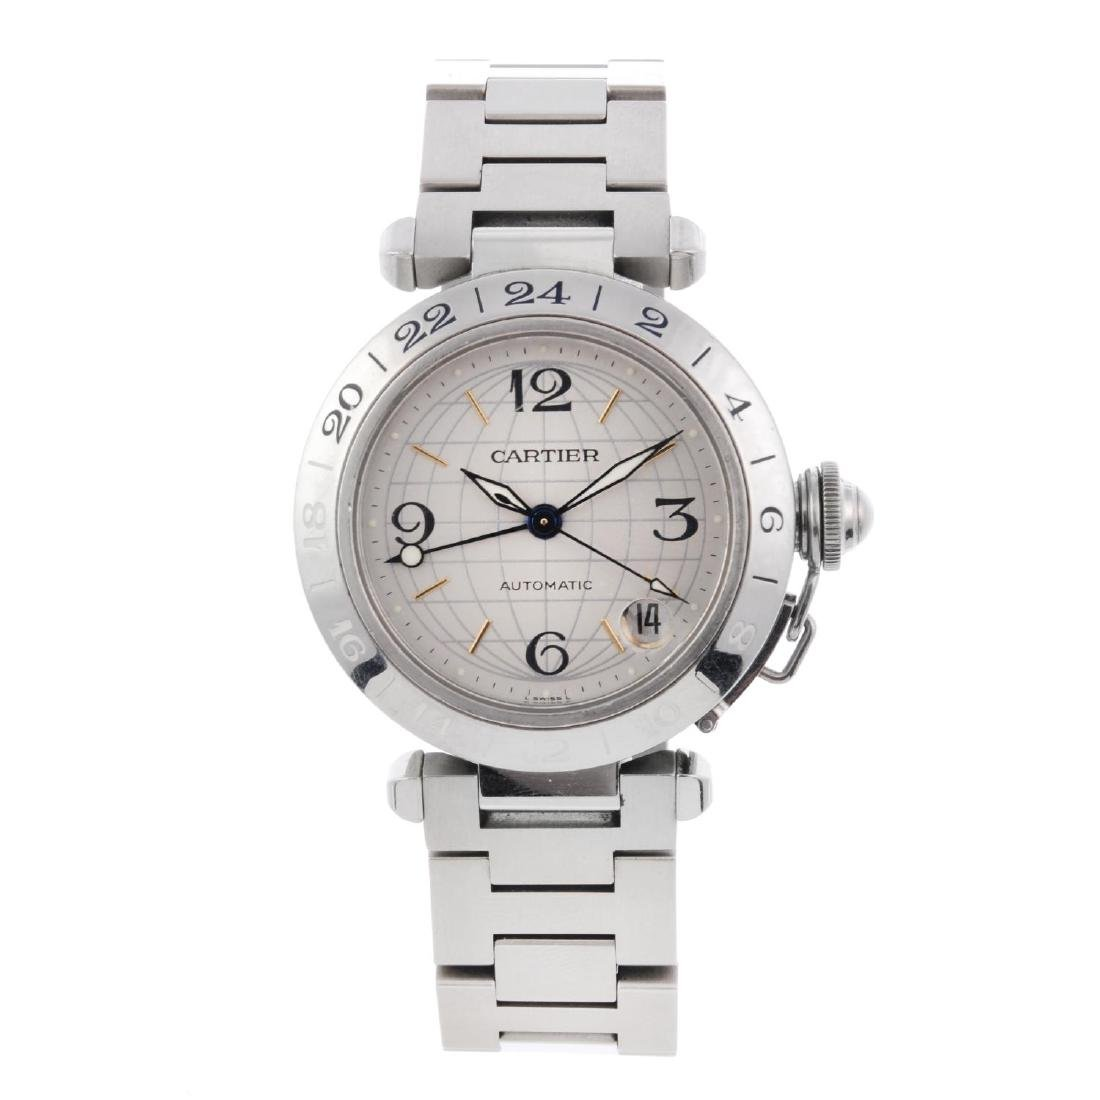 CARTIER - a Pasha GMT bracelet watch. Stainless steel